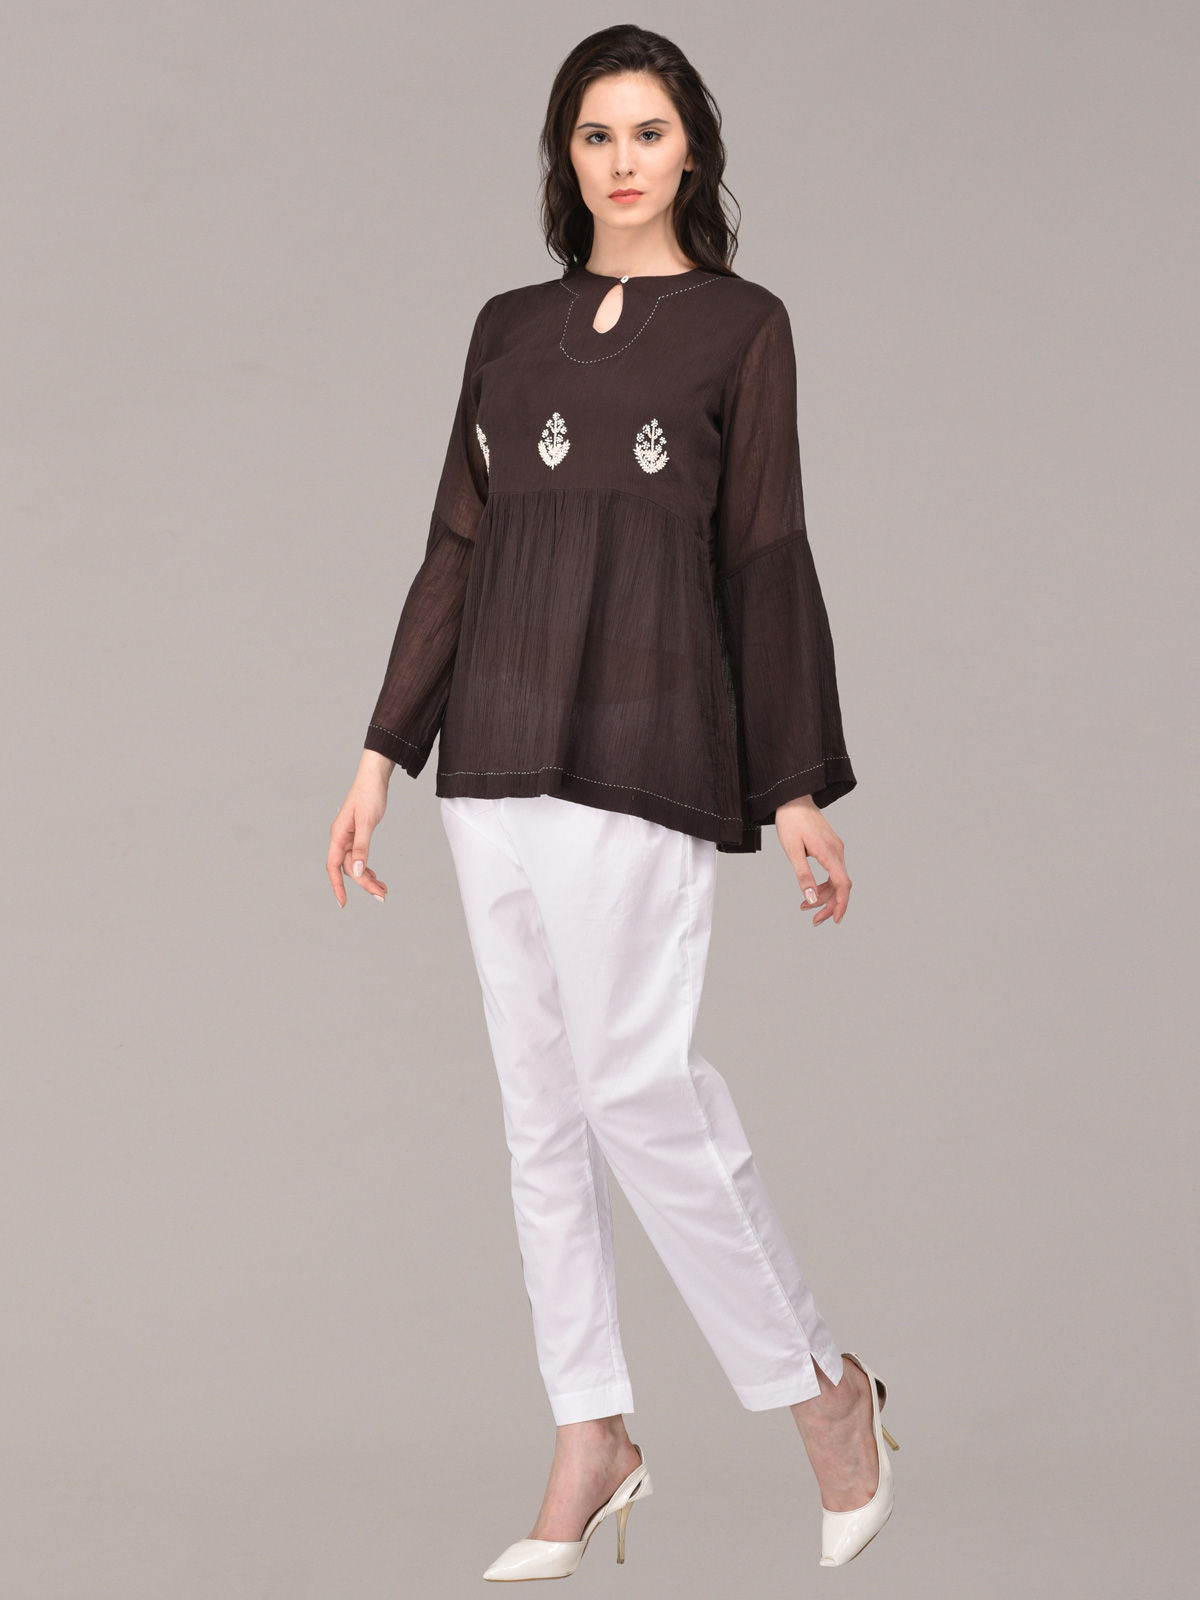 Panachee hand embroidered black pure cotton top